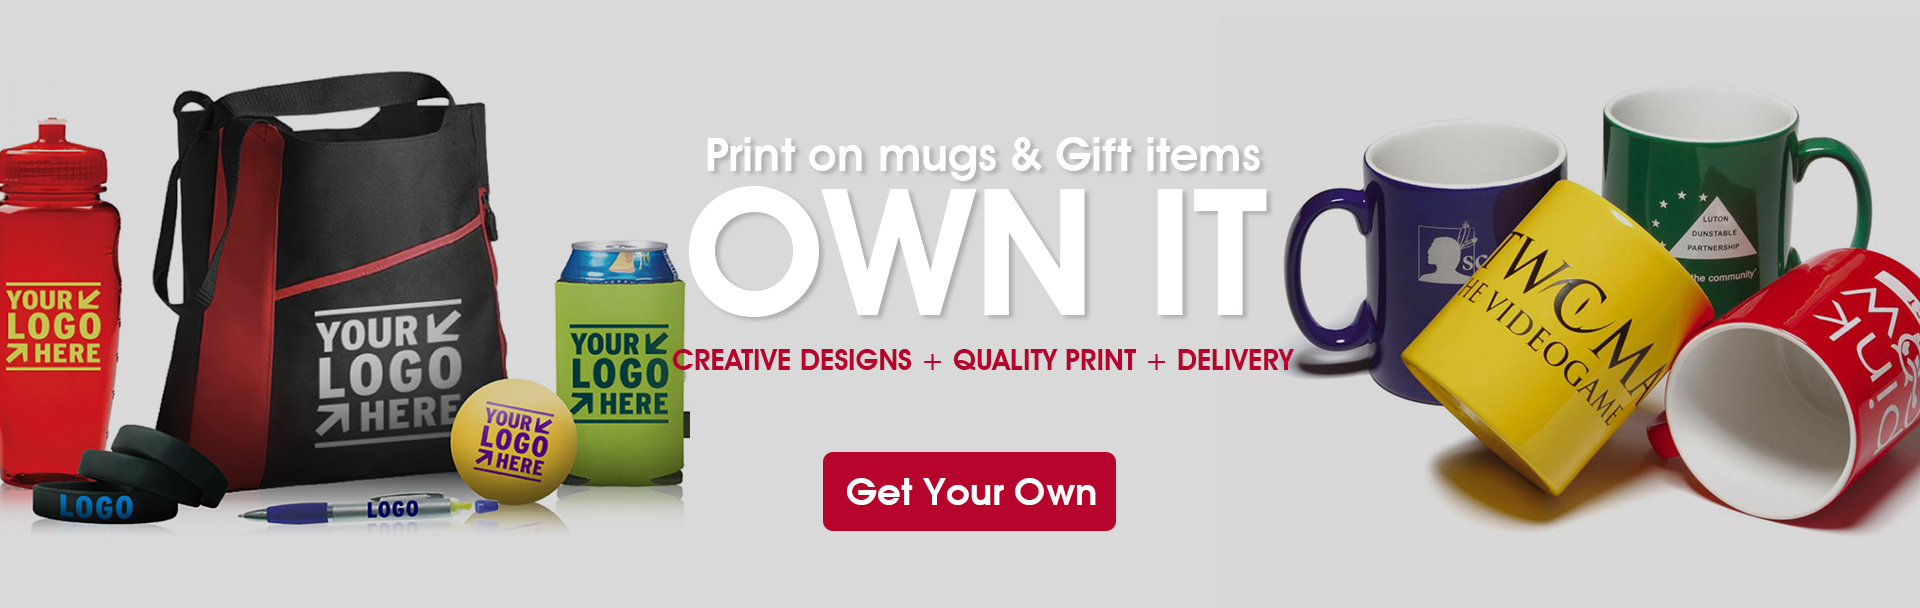 Corporate Gifts Printing in manesar